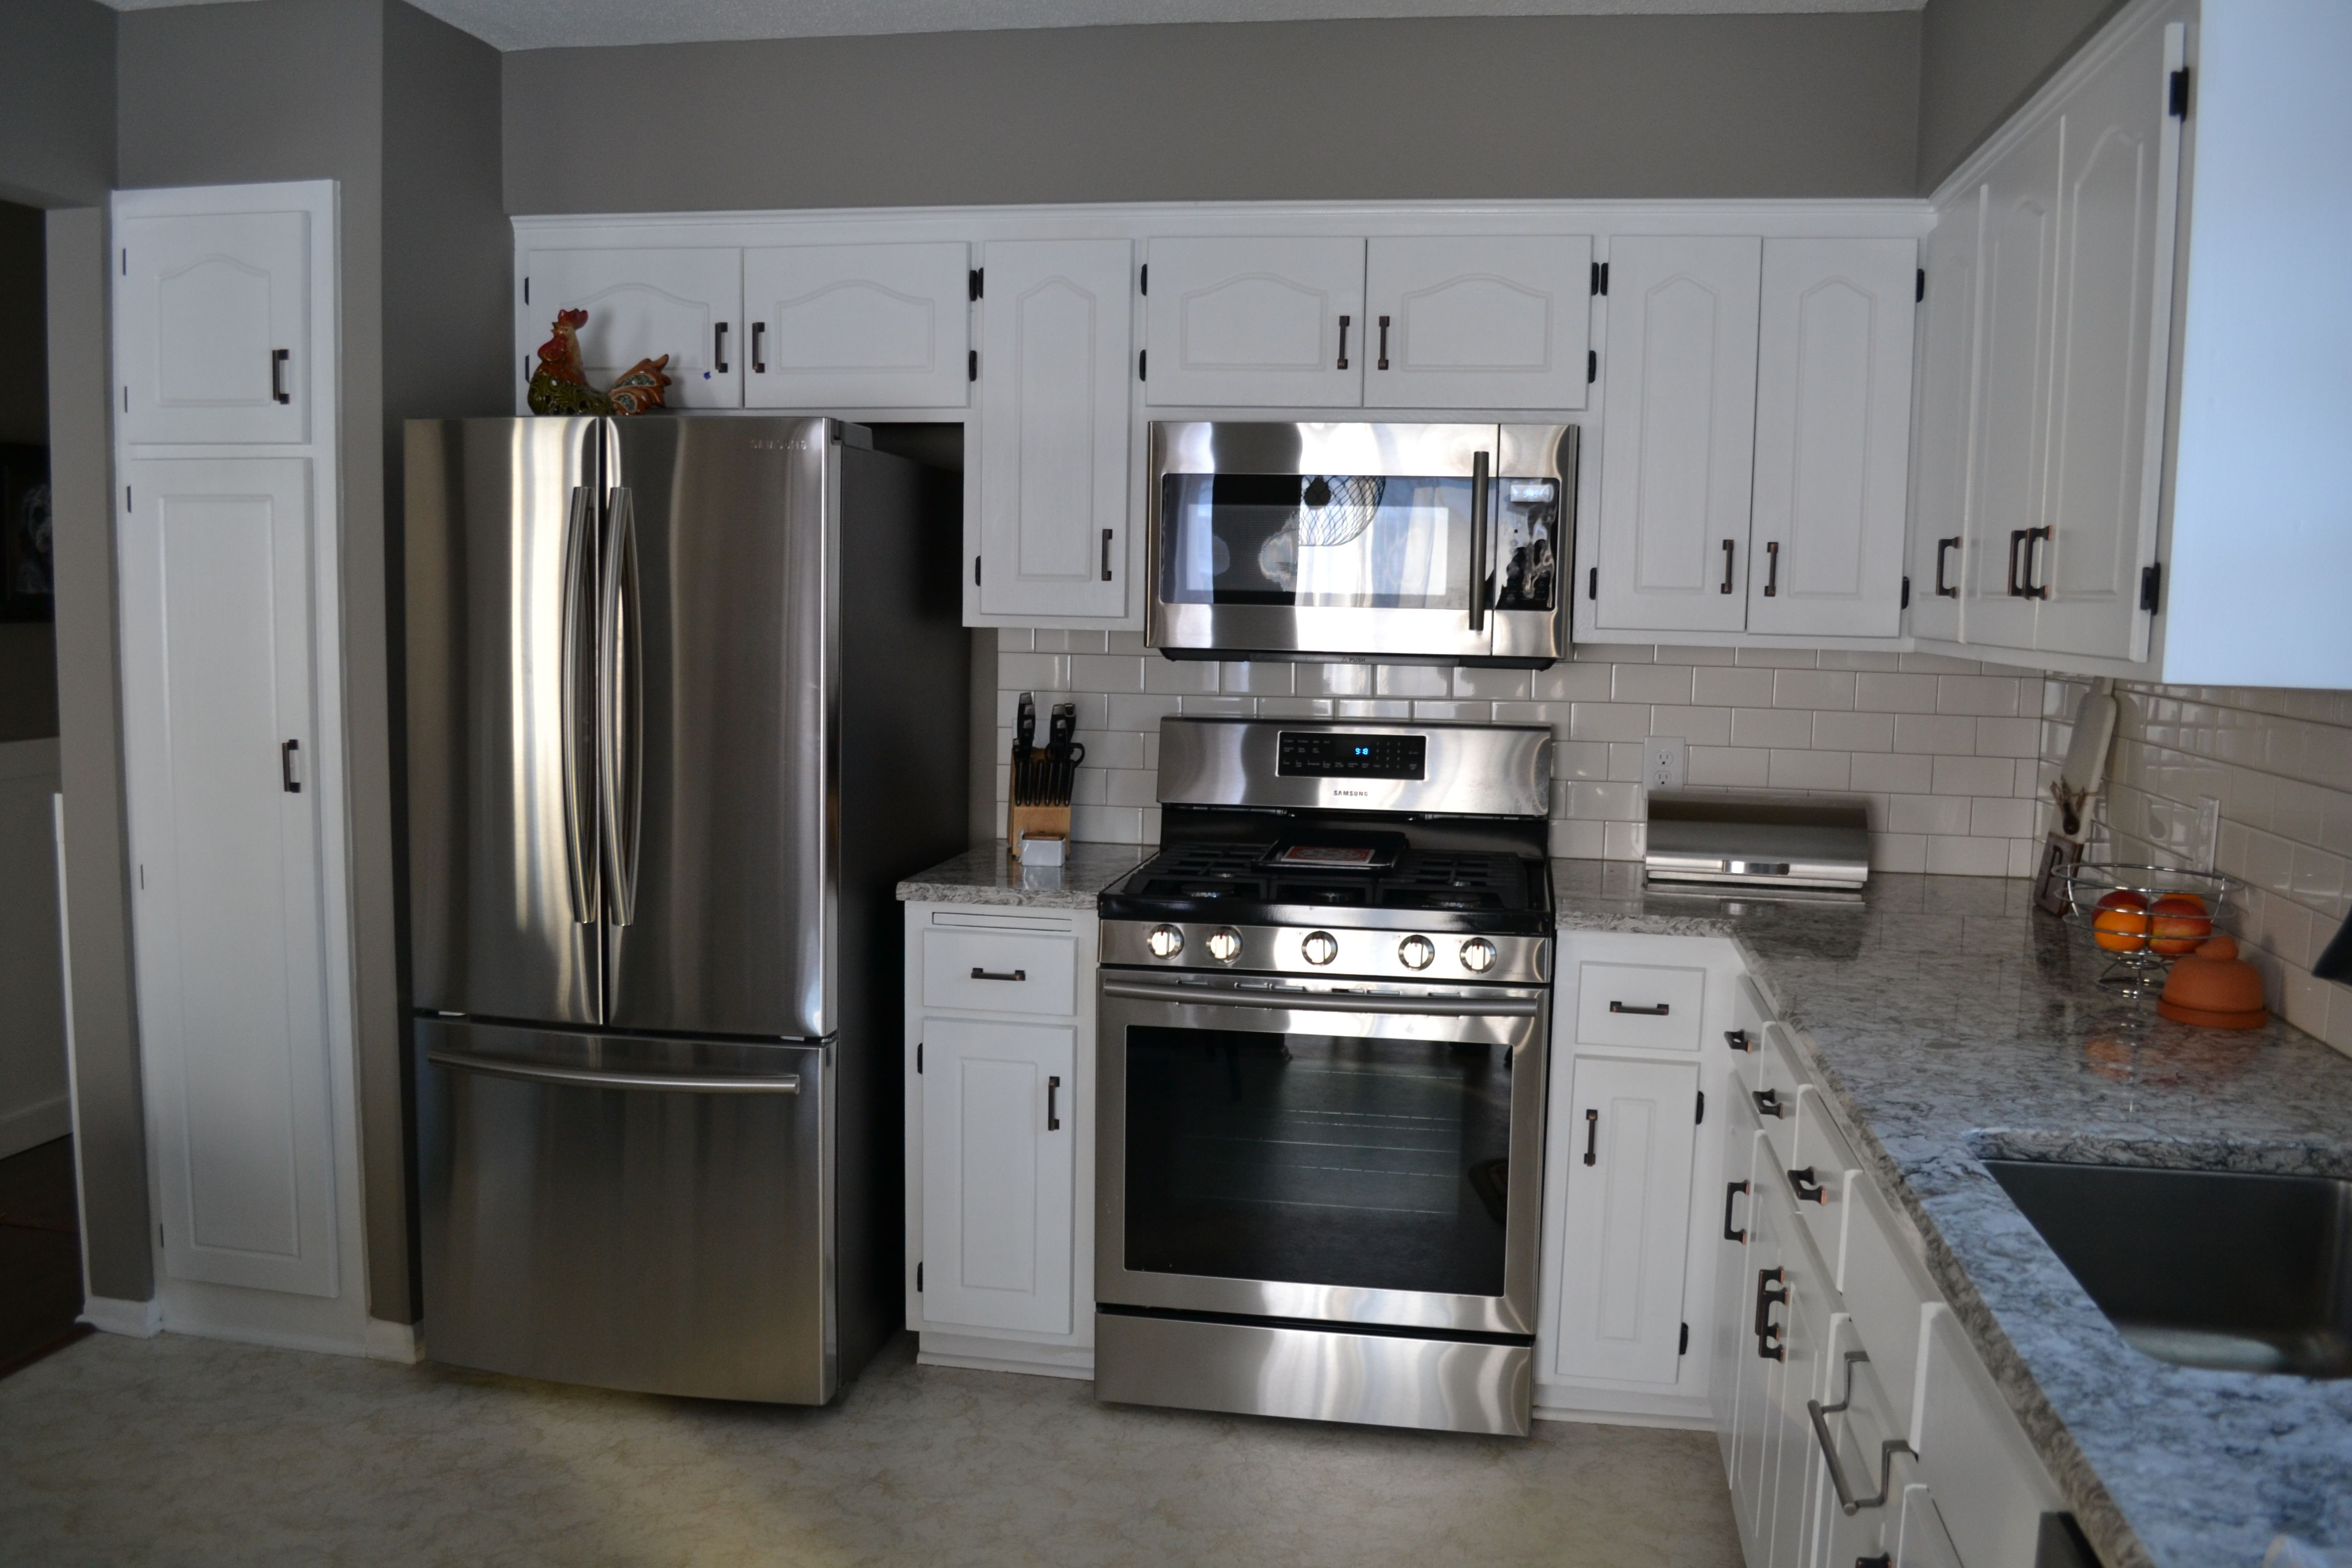 White Cabinets With Oil Rubbed Bronze Hardware And Stainless Steel Appliances Rubbed Bronze Kitchen Bronze Kitchen Hardware Kitchen Hardware